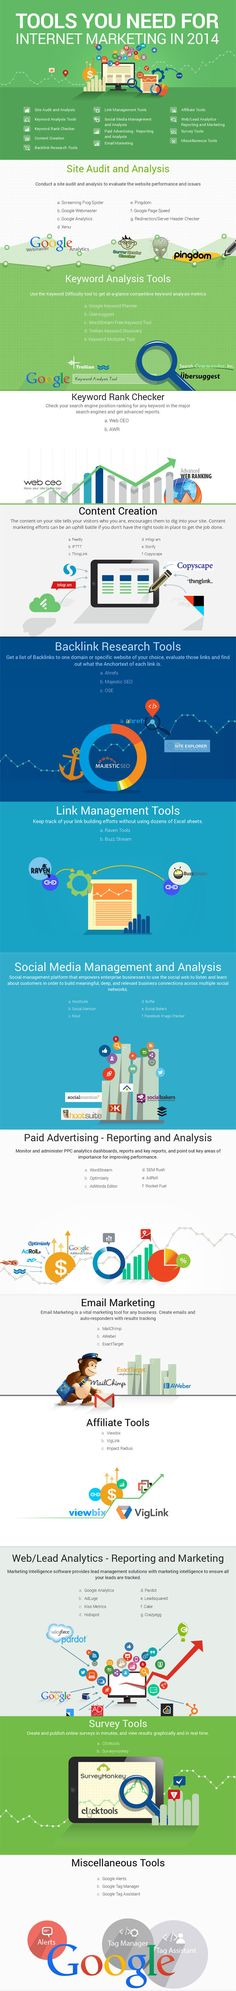 #socialmedia #infographic #marketing #bumblebeesocialmedia  Infographic: Tools You Need For Internet Marketing In 2014